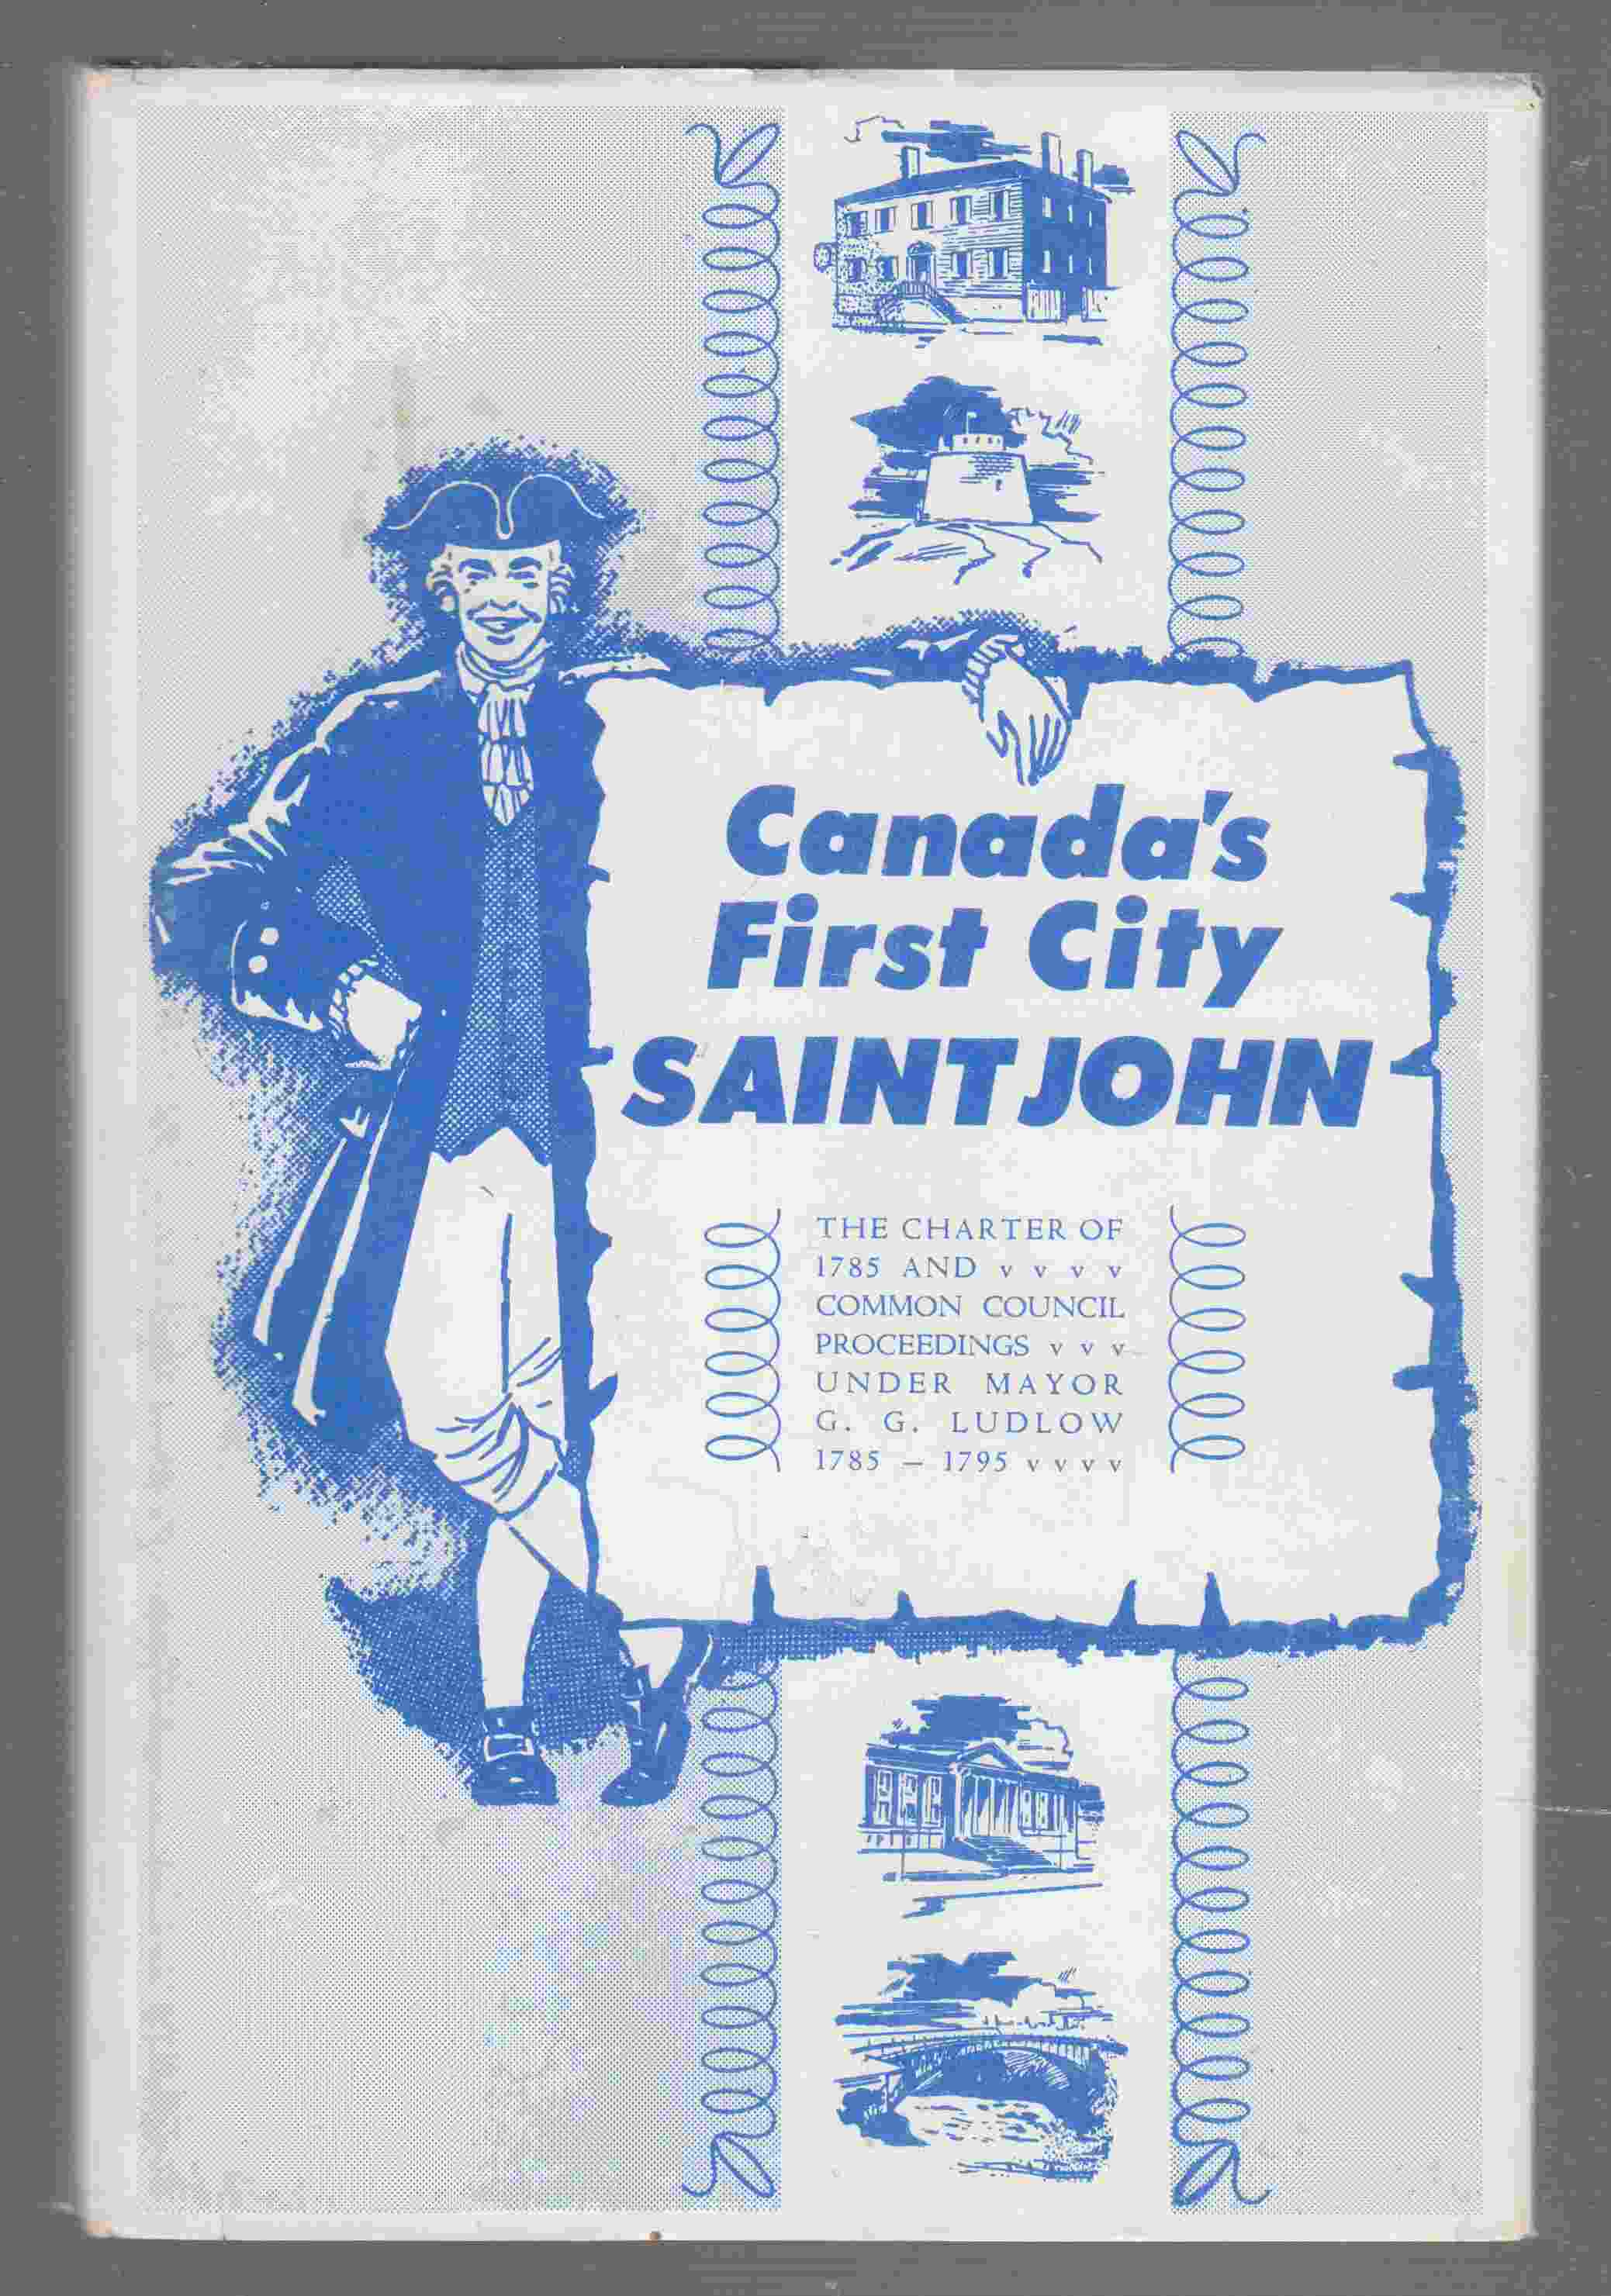 Image for Canada's First City Saint John The Charter of 1785 and Common Council Proceedings under Mayor G. G. Ludlow 1785-1795